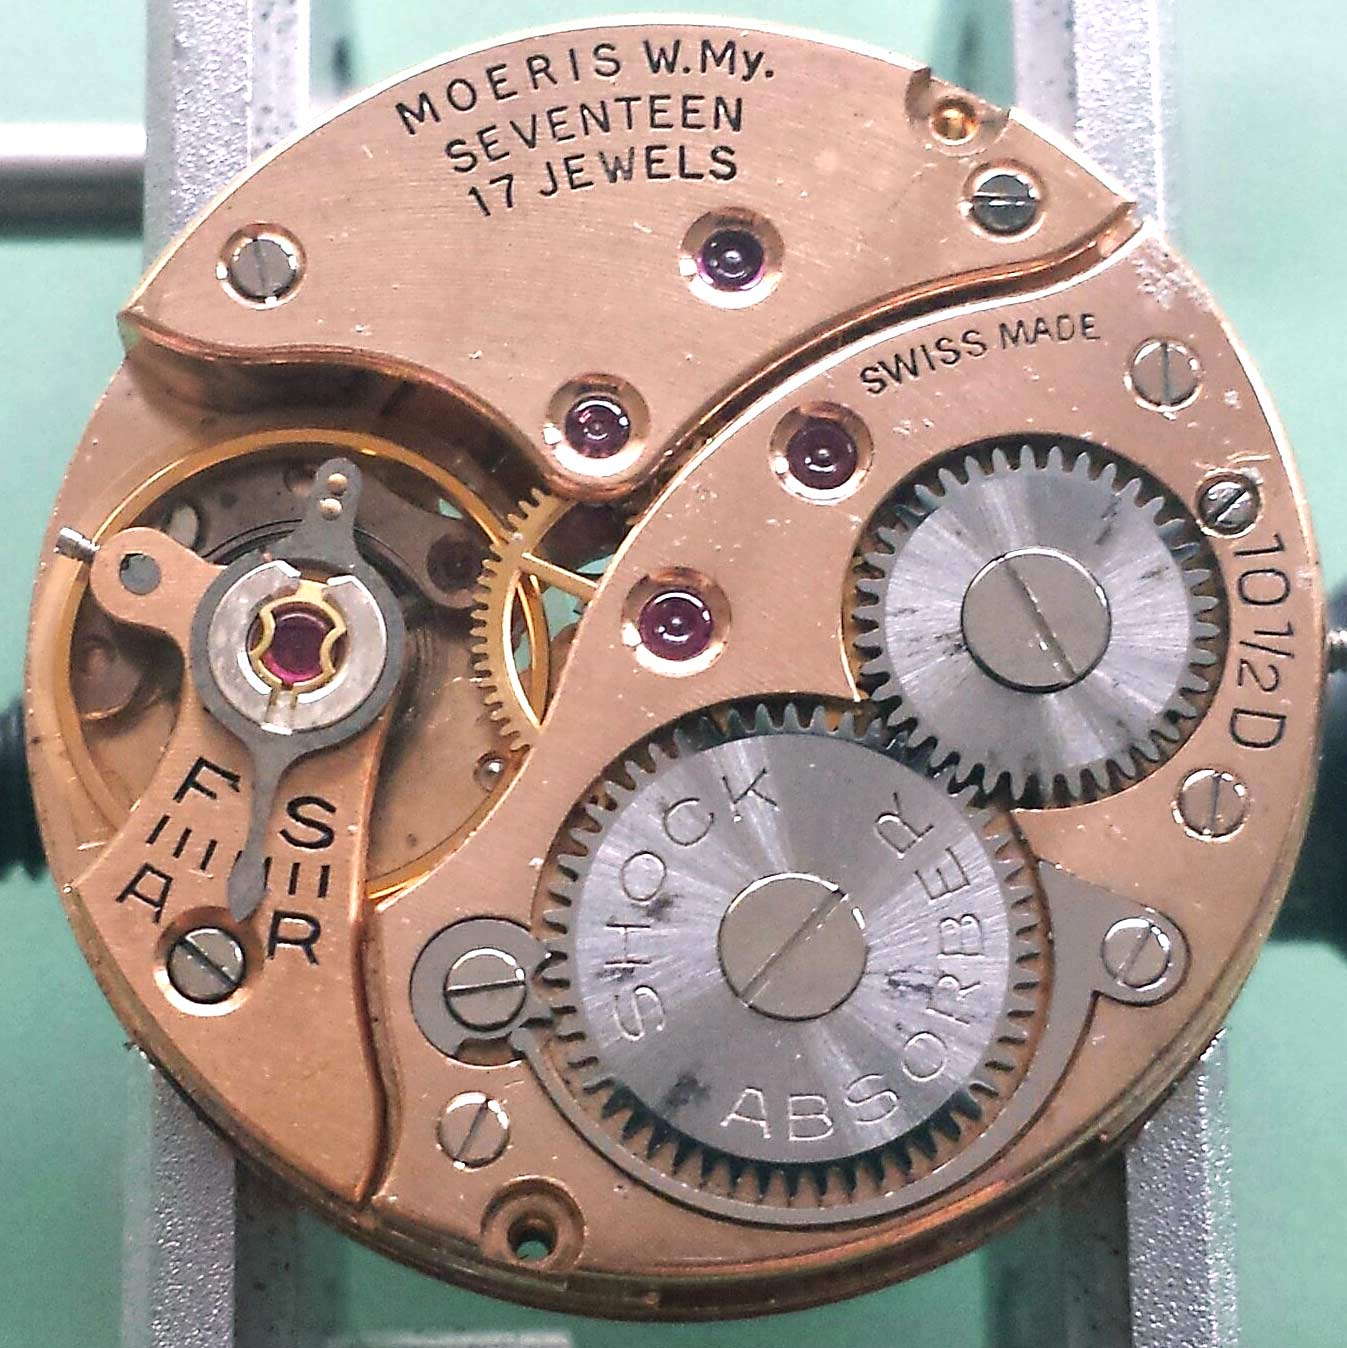 Moeris caliber 10 1/2 D mechanical watch movement